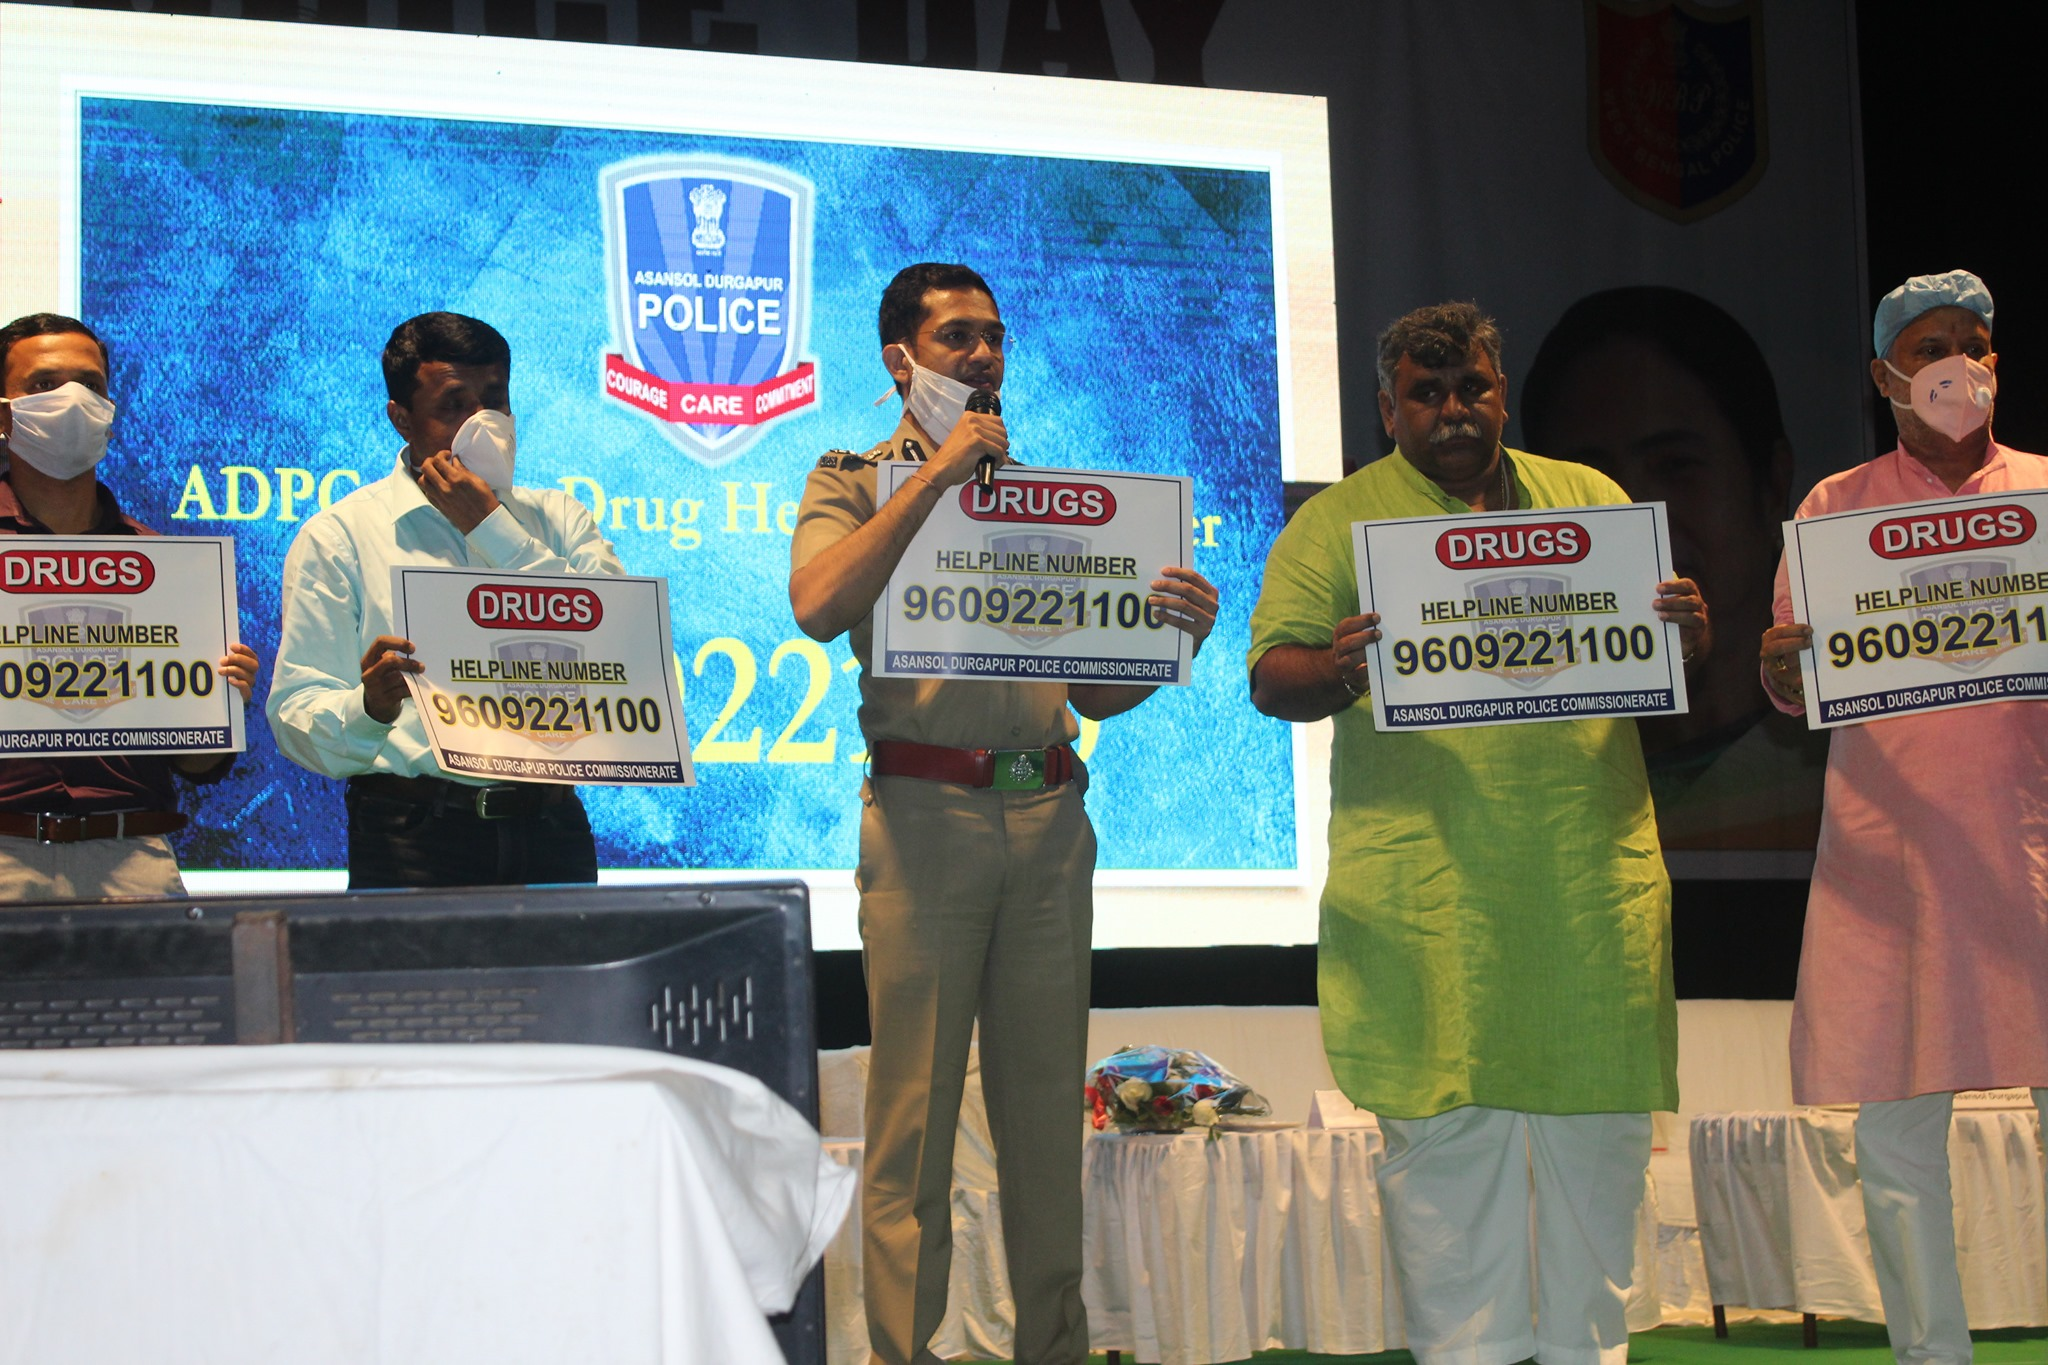 Inauguration of Drug Helpline No. 9609221100